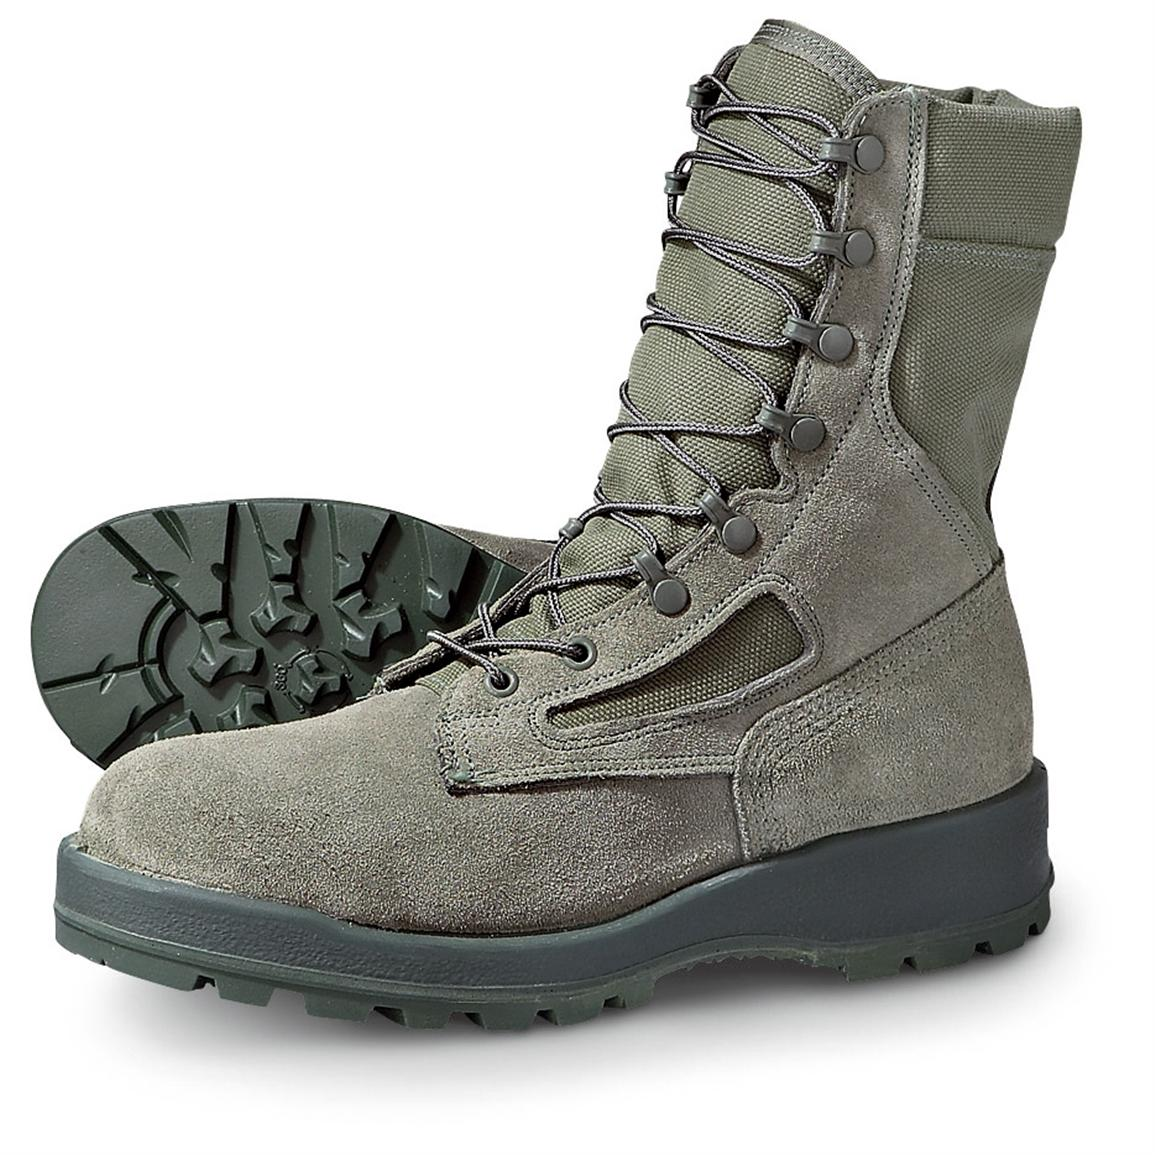 Air Force Combat Boots bAmQh04U